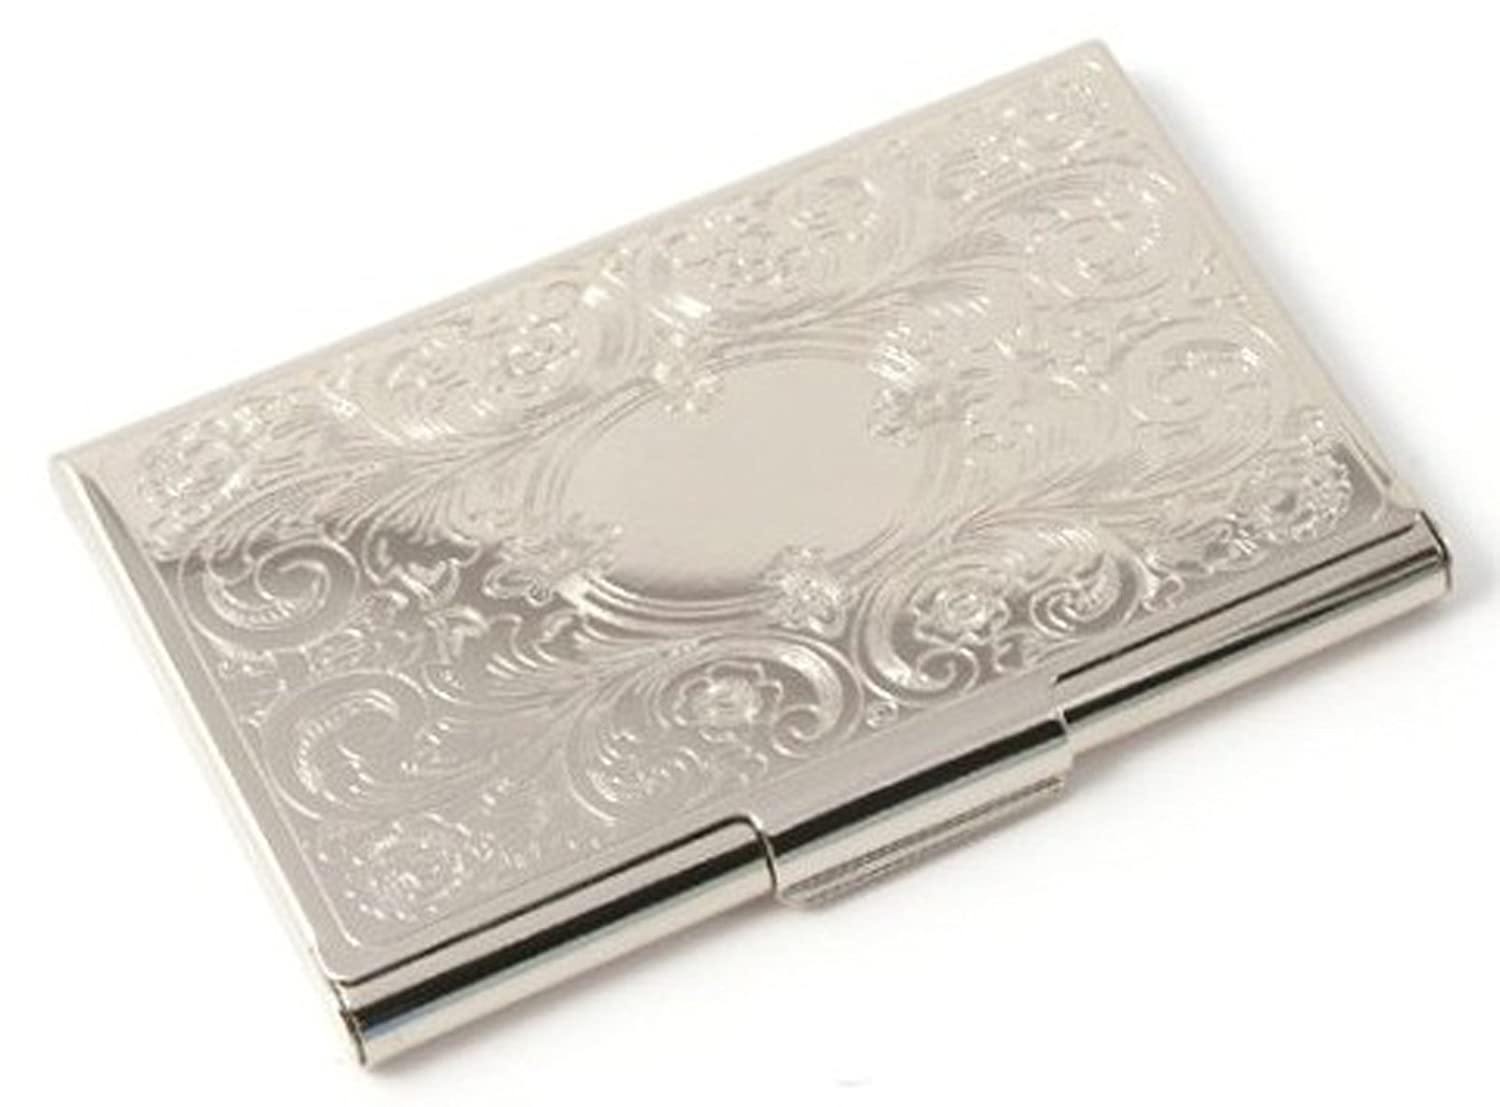 Deluxe Stainless Steel Metal Business Credit Card Holder Case Silver ...